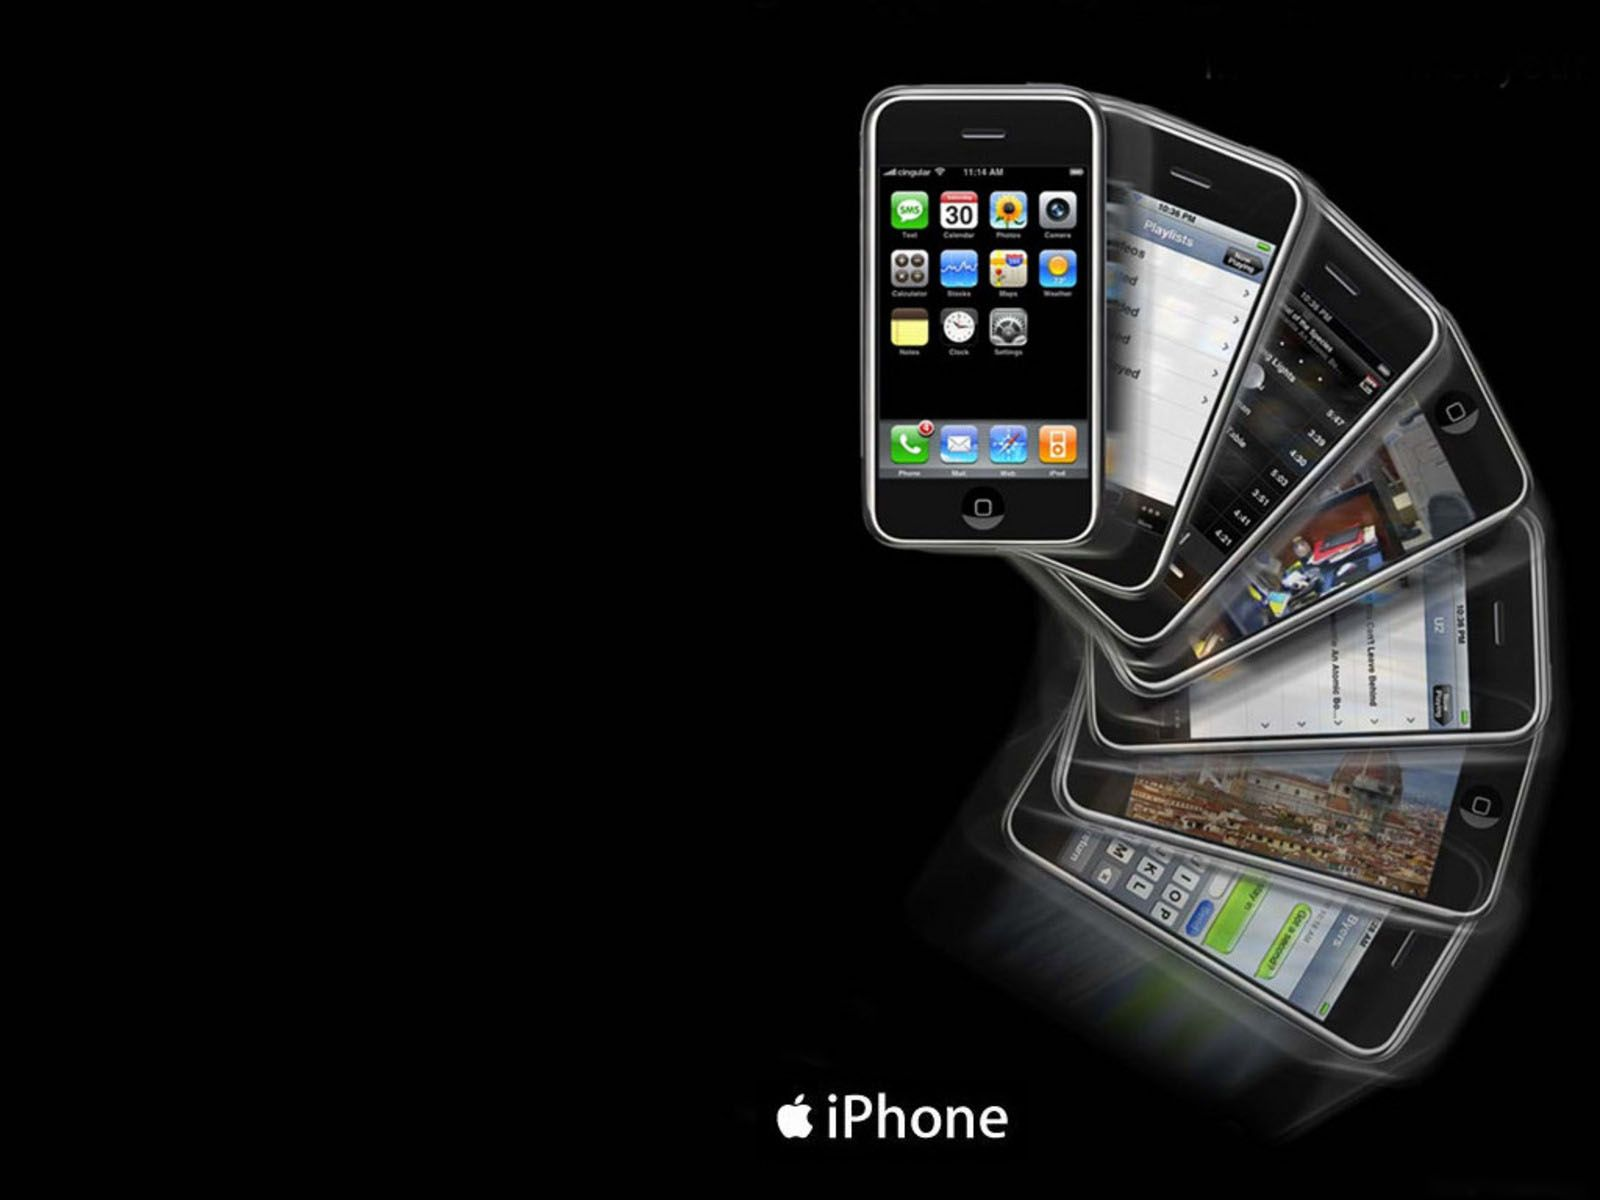 Apple iPhone template Background Wallpaper for PowerPoint 1600x1200